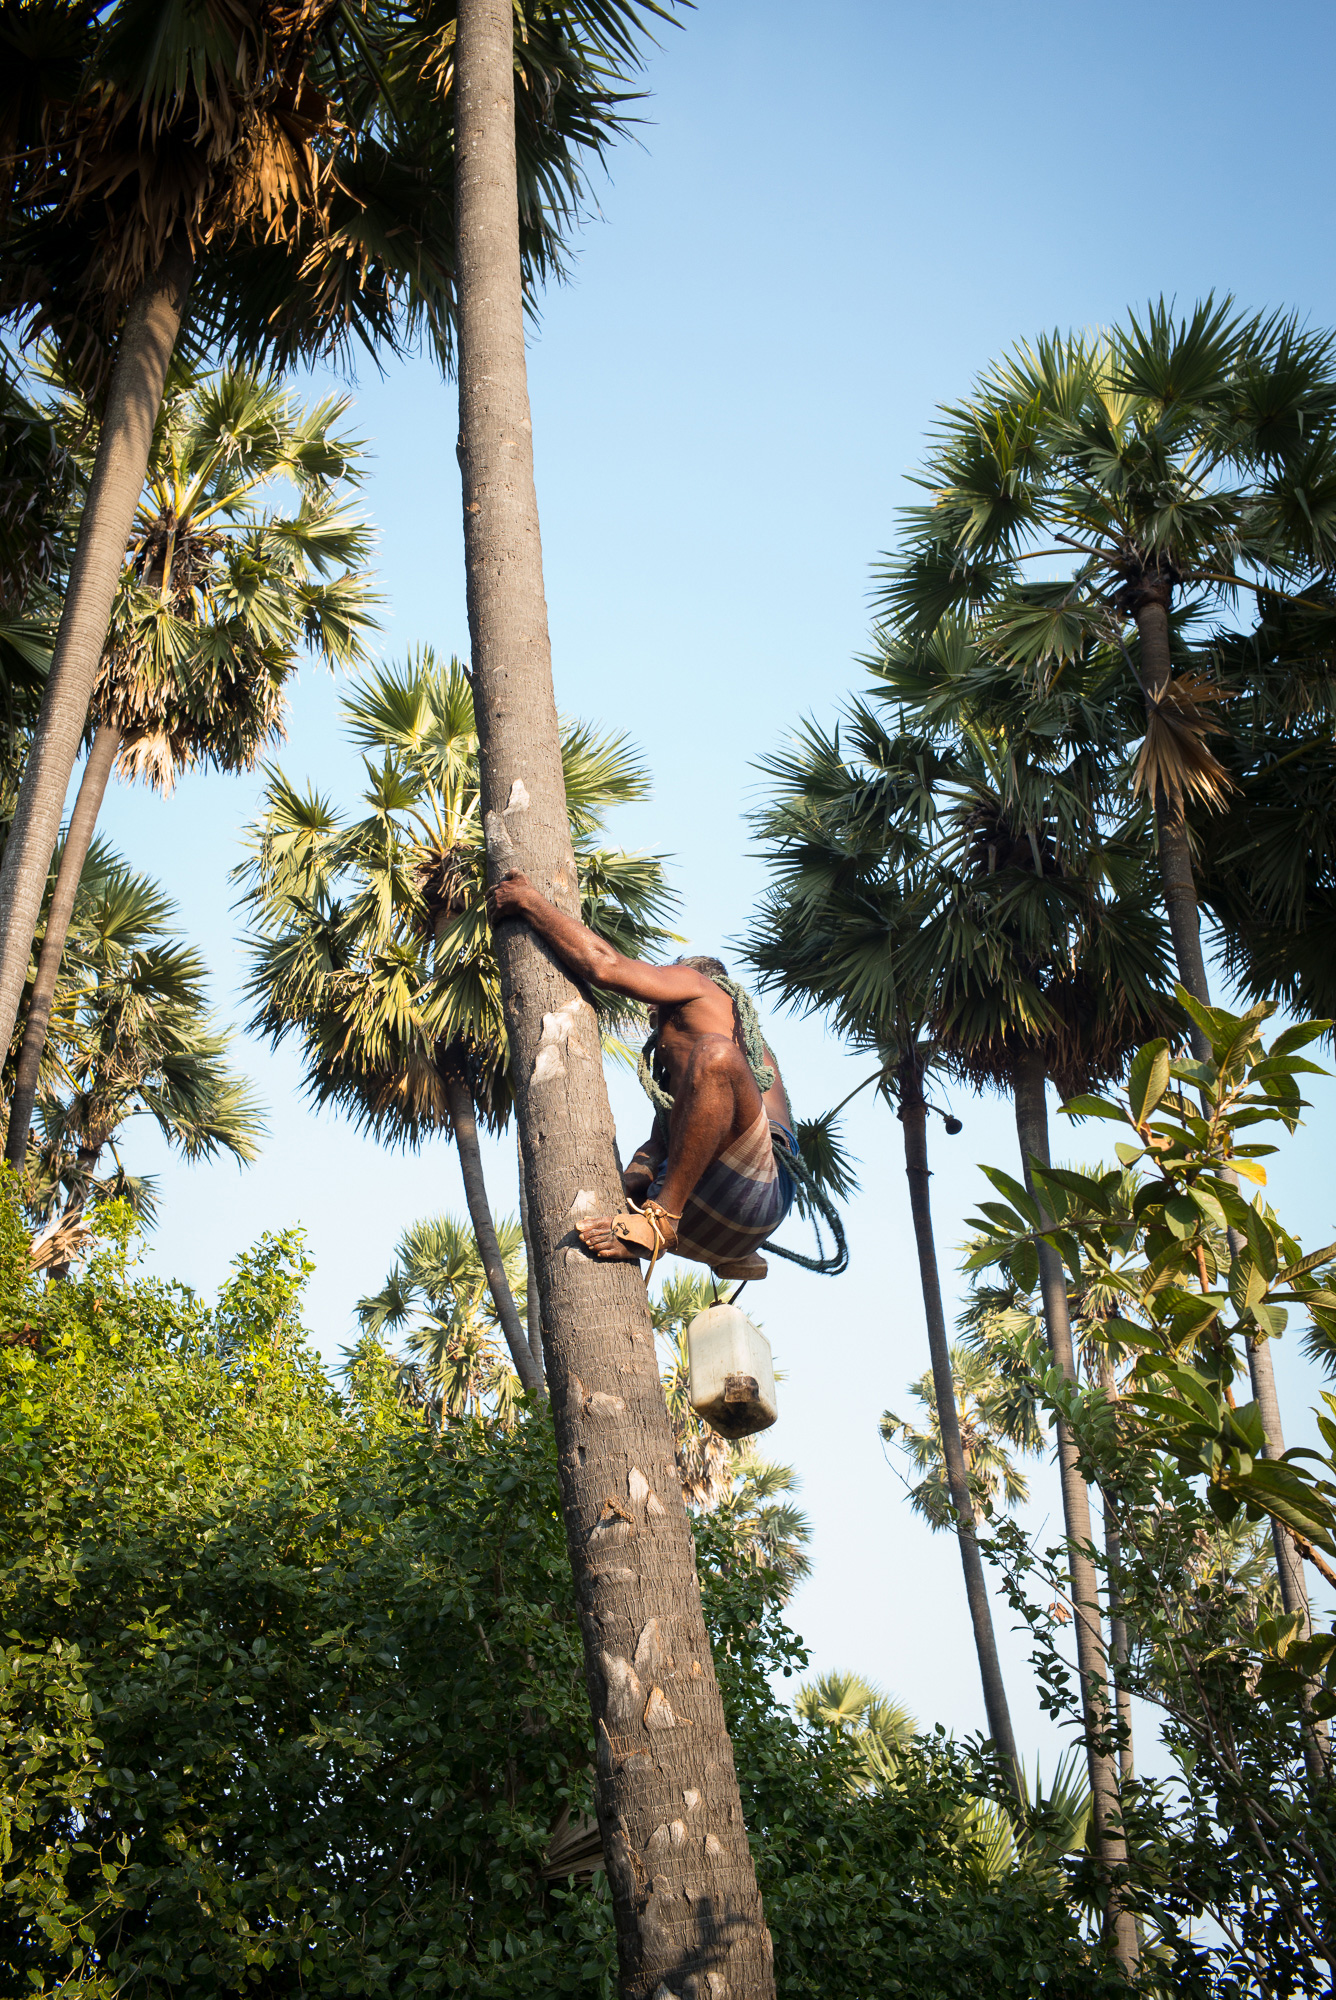 Unlike other areas where tappers sometimes use ropes to move from tree to tree, palmyra palms are all climbed individually.